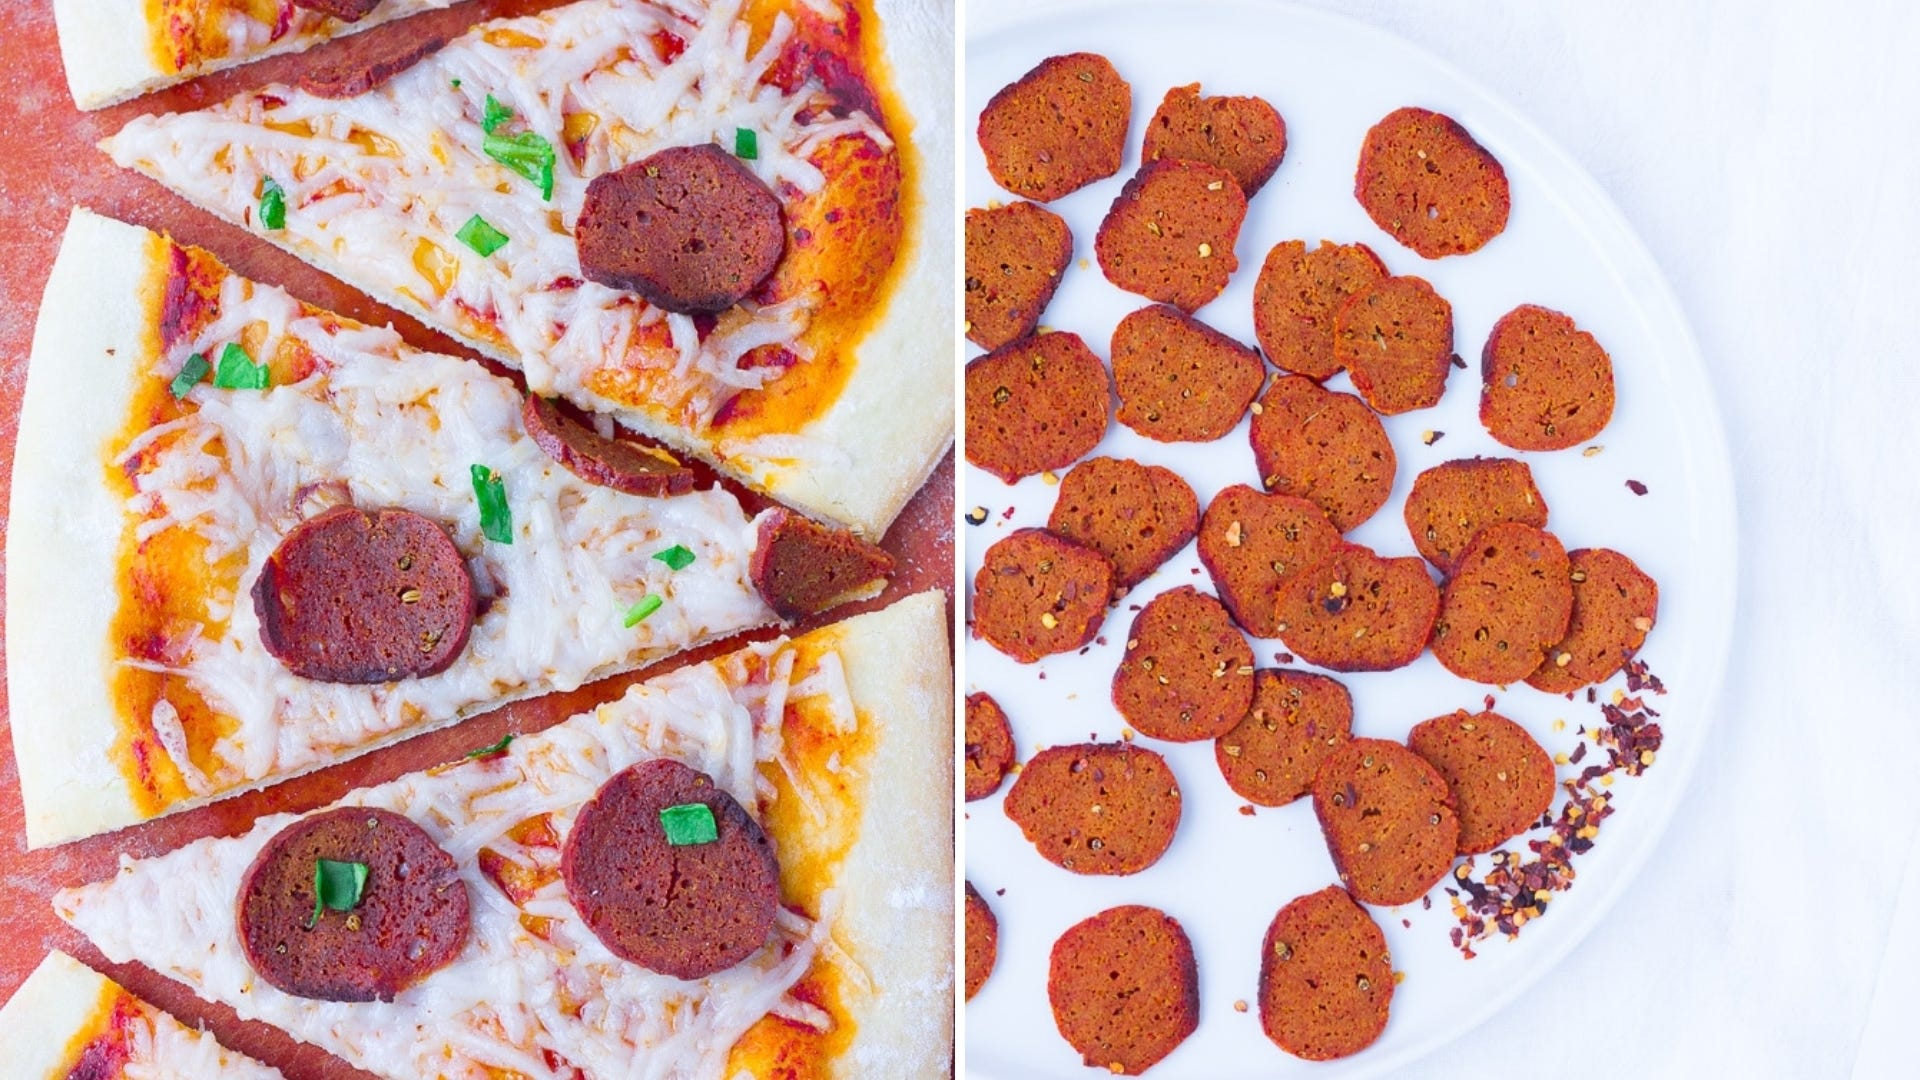 Two pictures of pepperoni pizza and pepperoni on a plate